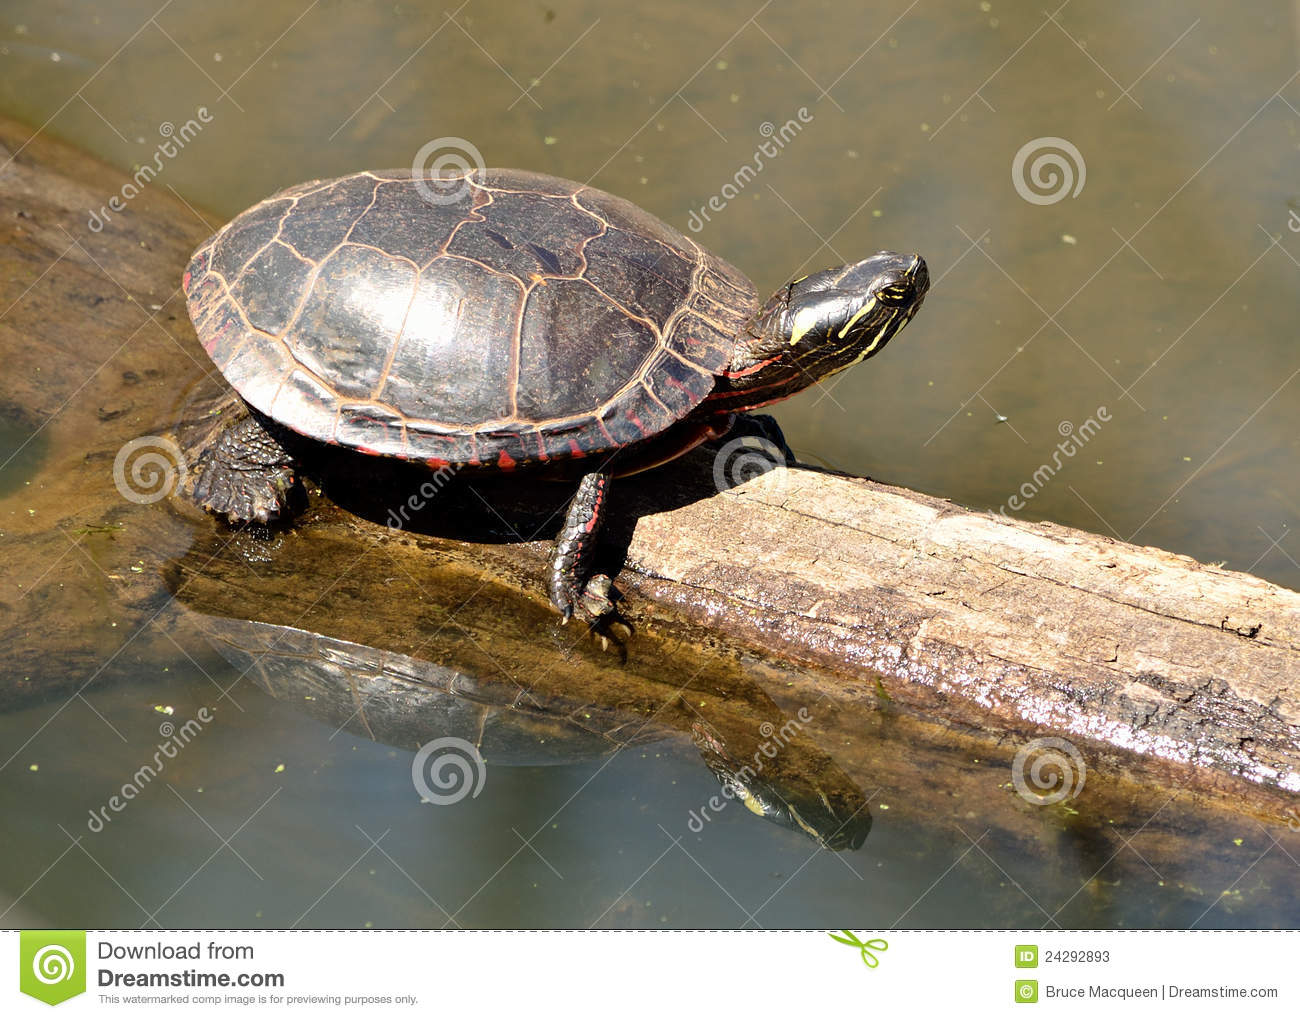 Download Painted Turtle stock image. Image of painted, perched - 24292893